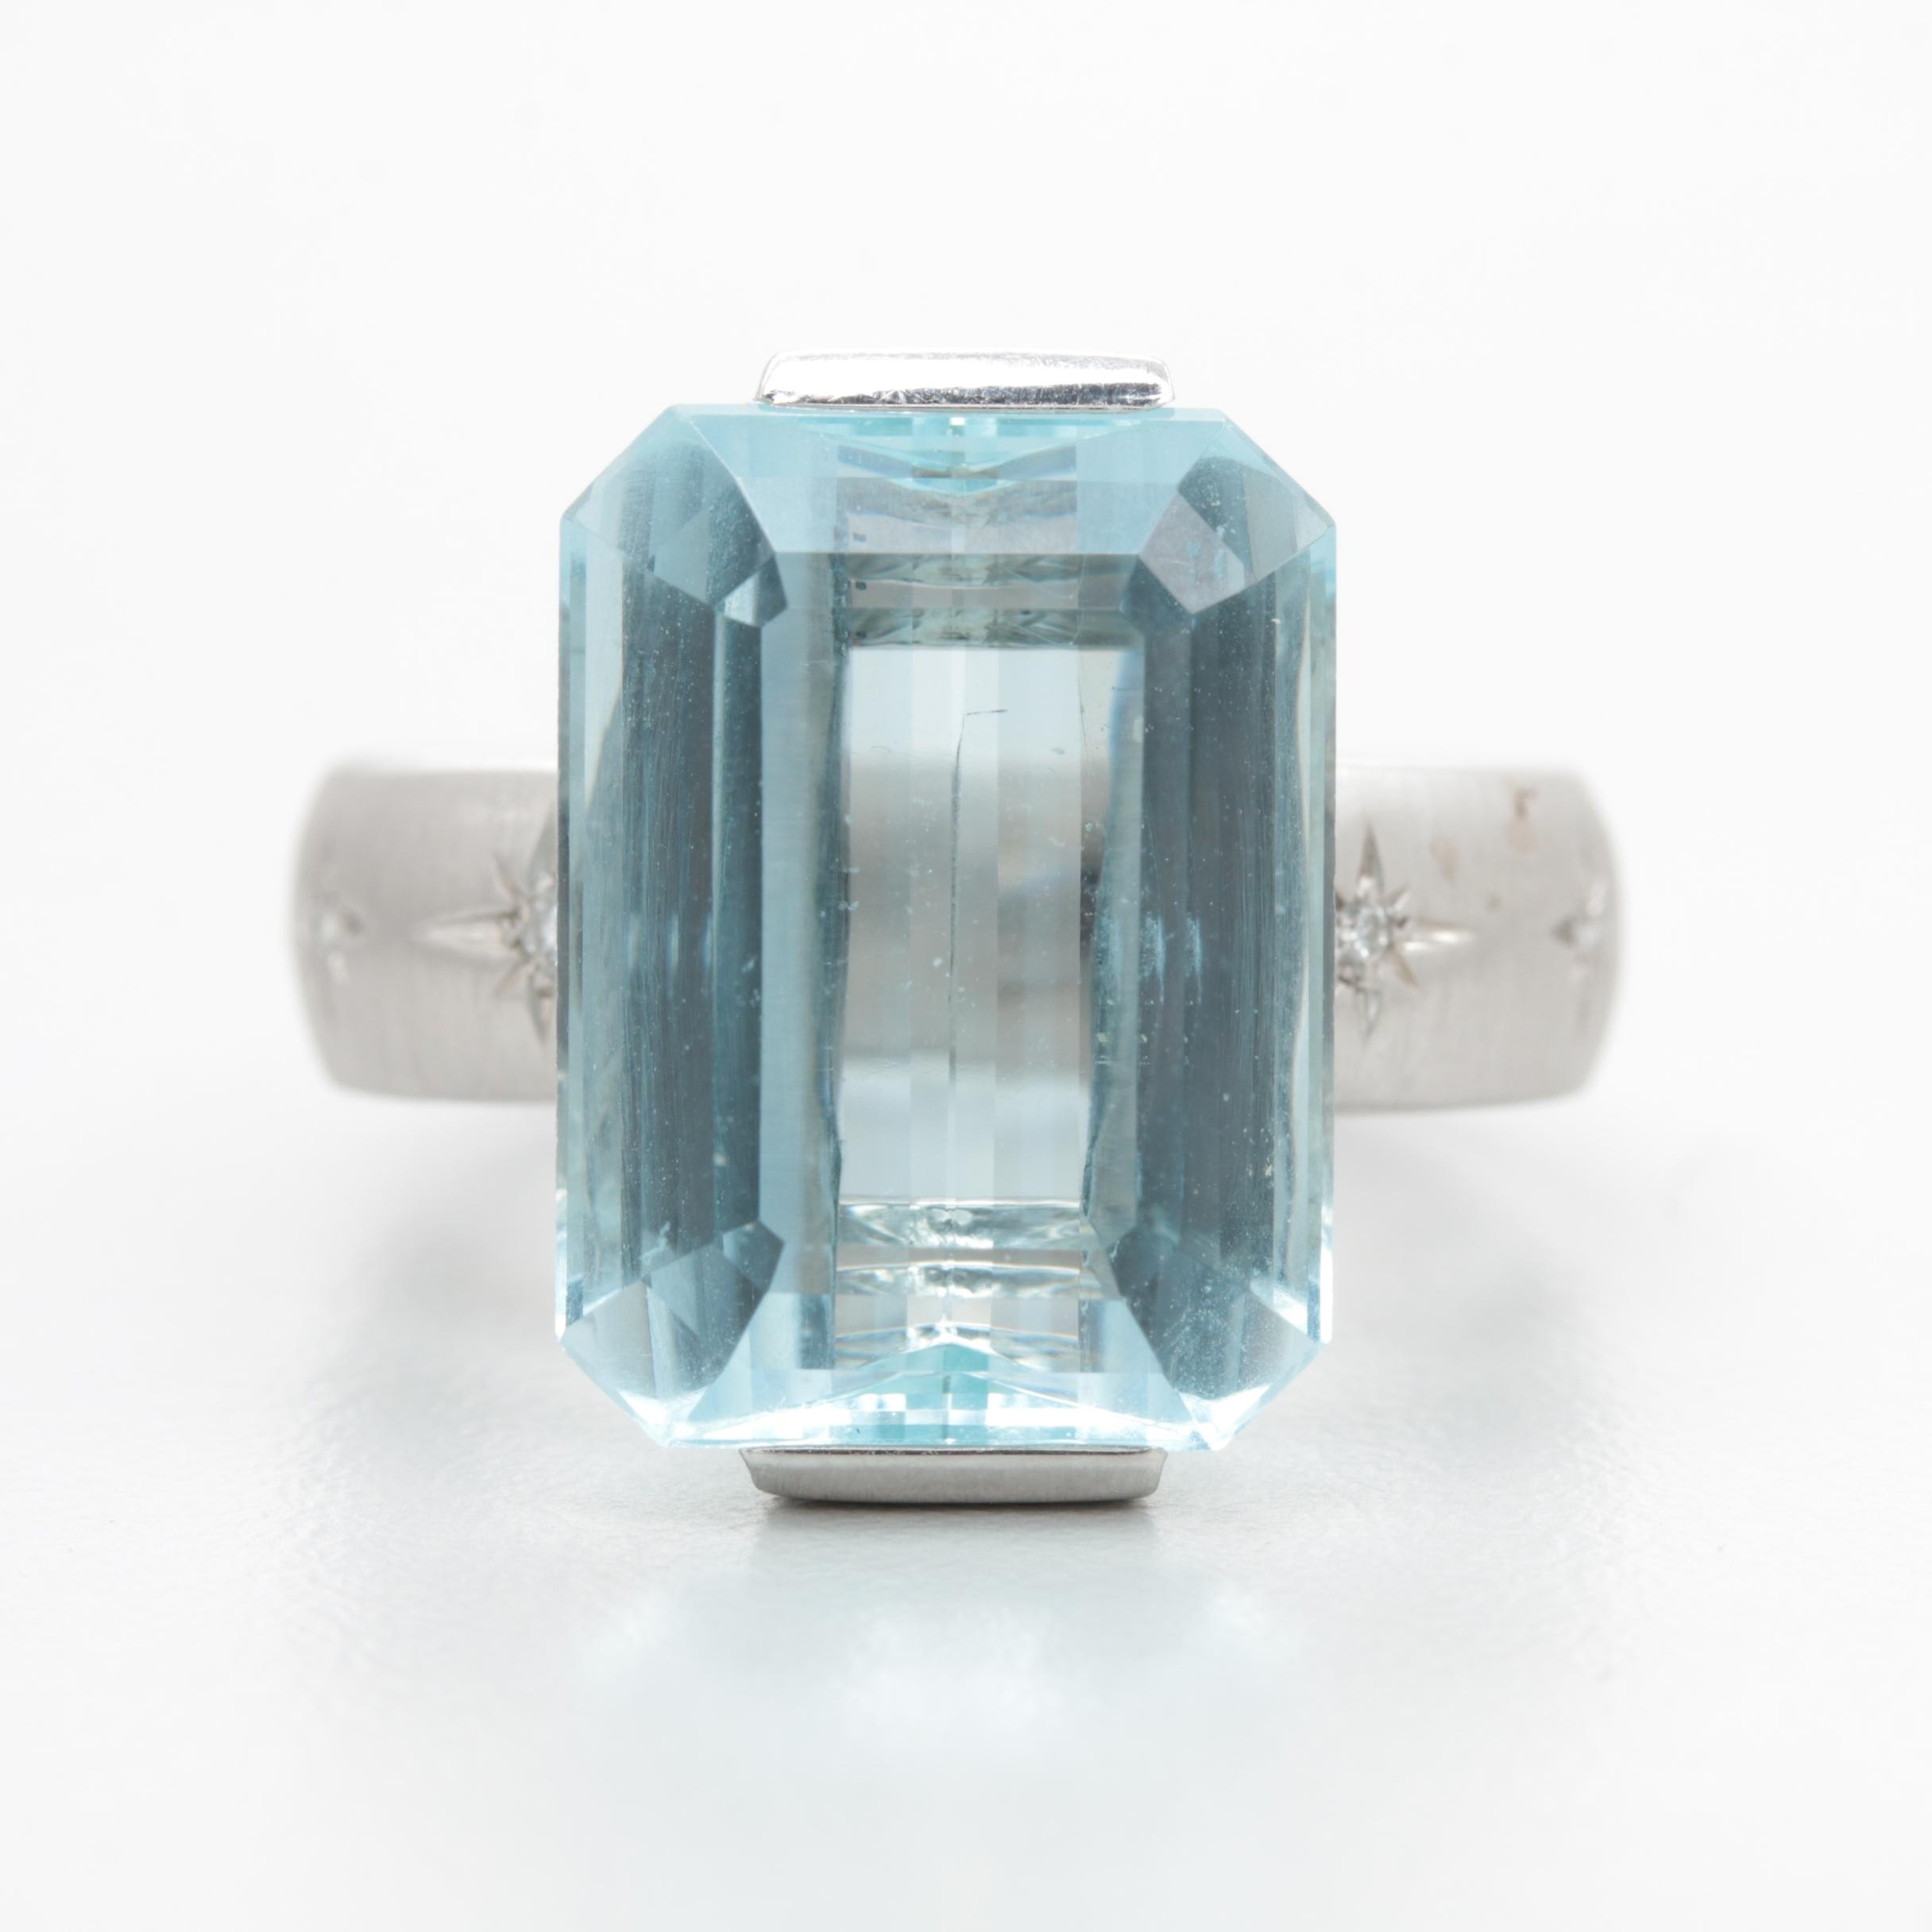 18K White Gold 12.87 CT Aquamarine and Diamond Ring